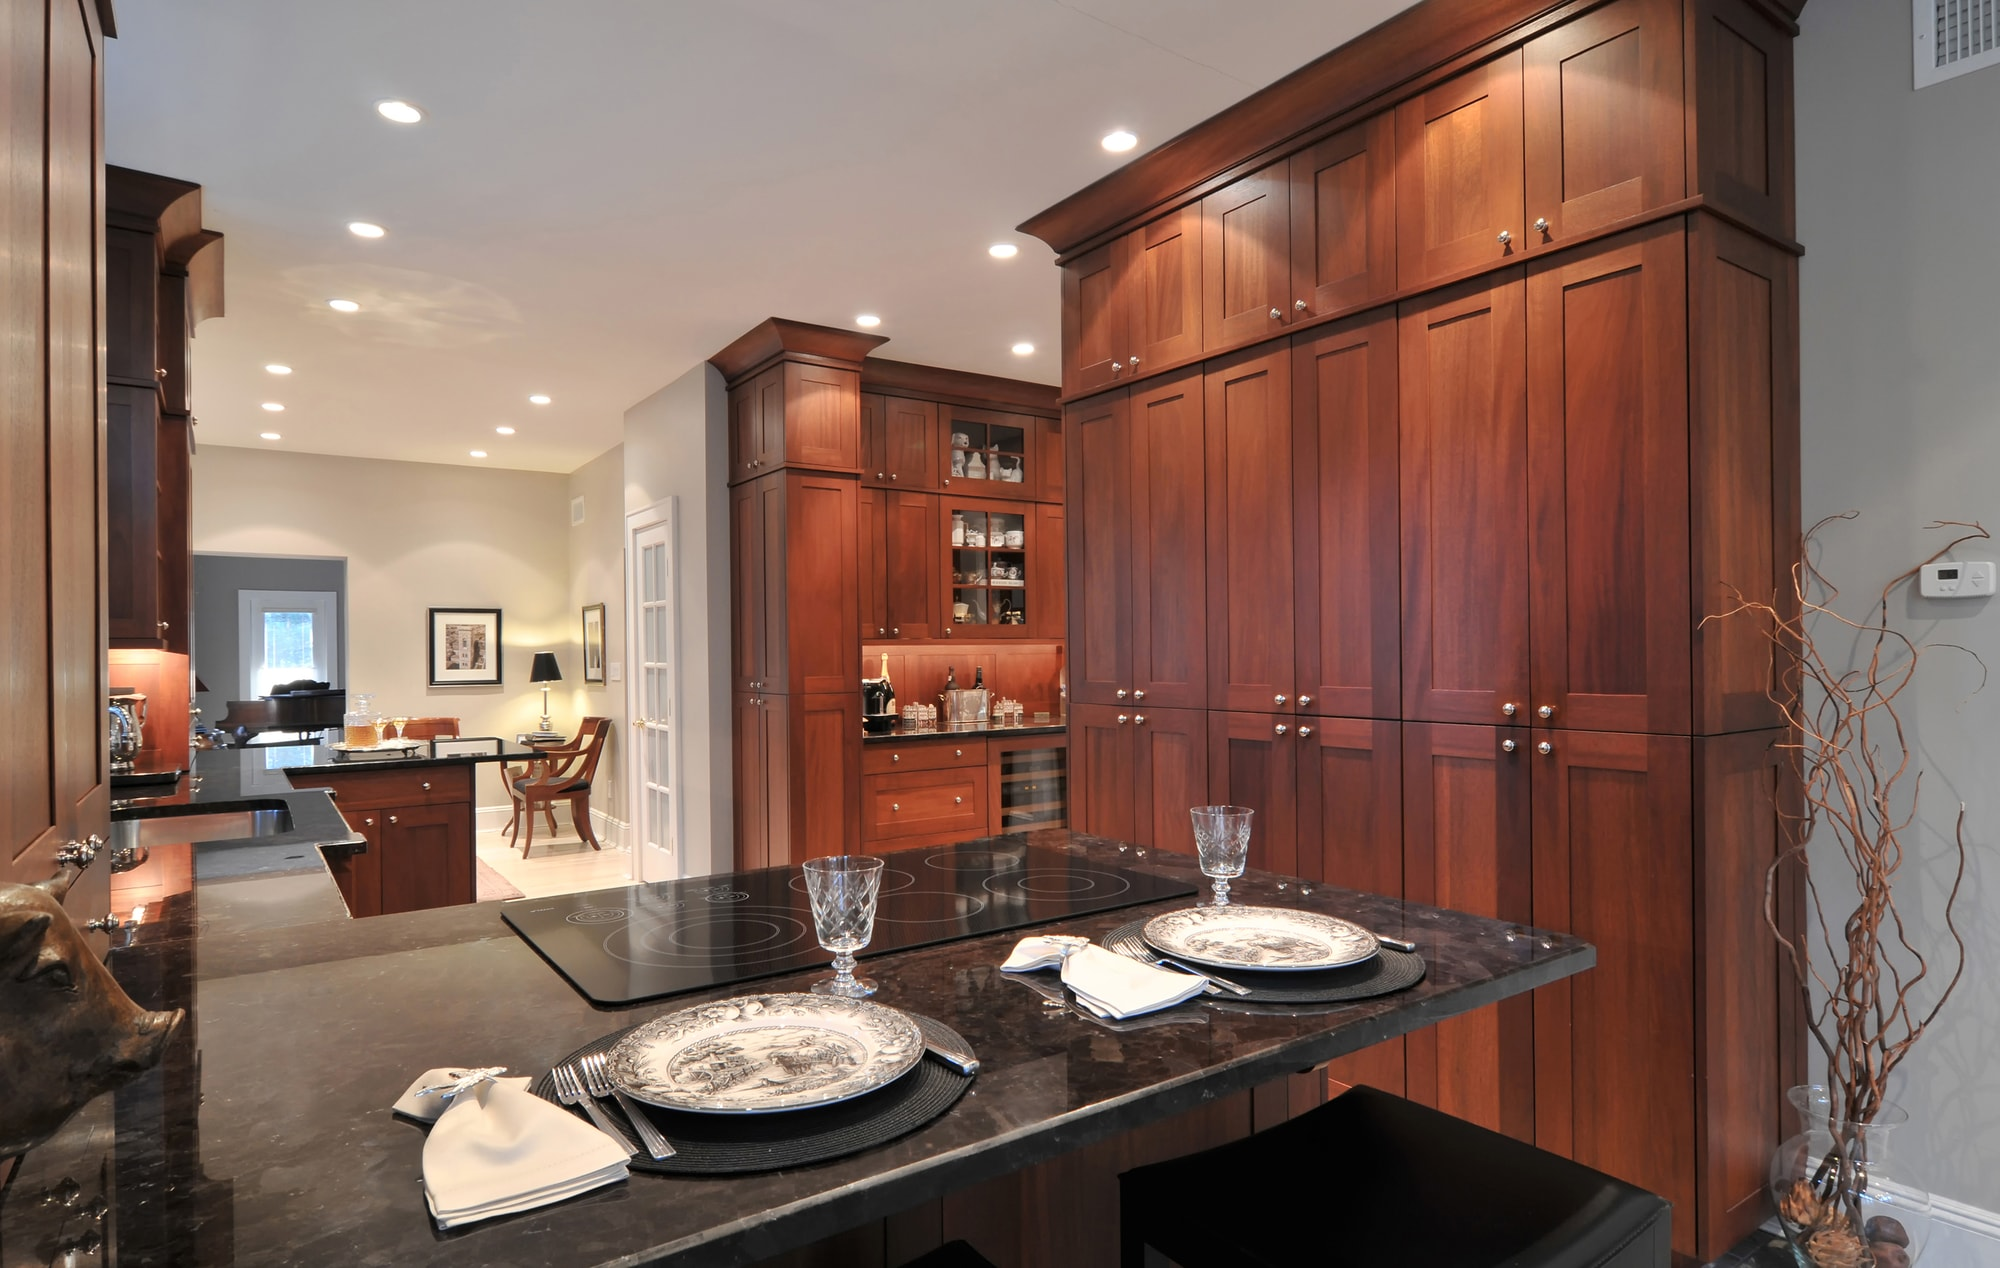 Transitional style kitchen with U'shaped kitchen counter